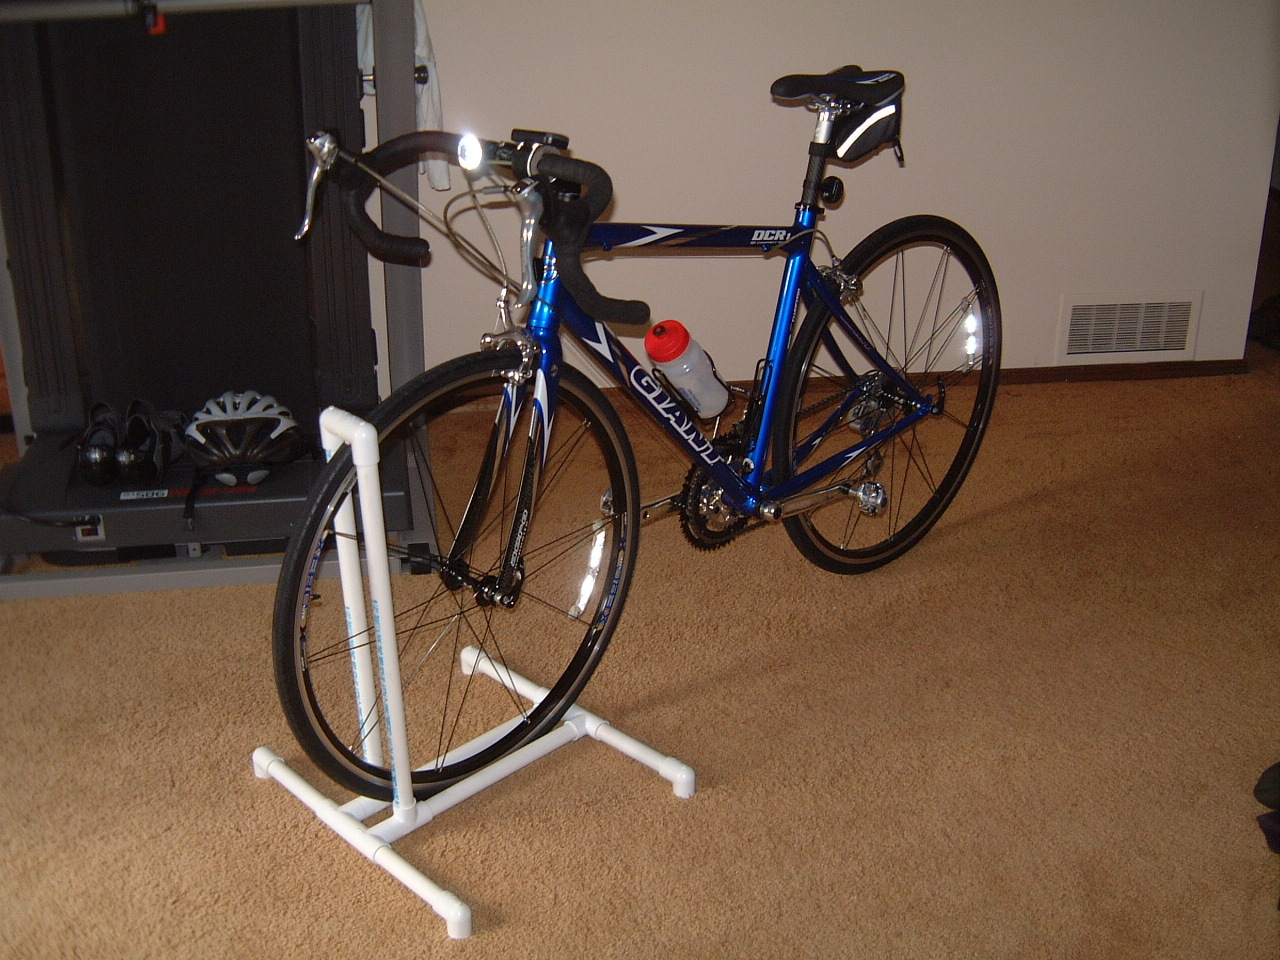 Bike Storage – The Problem is Real